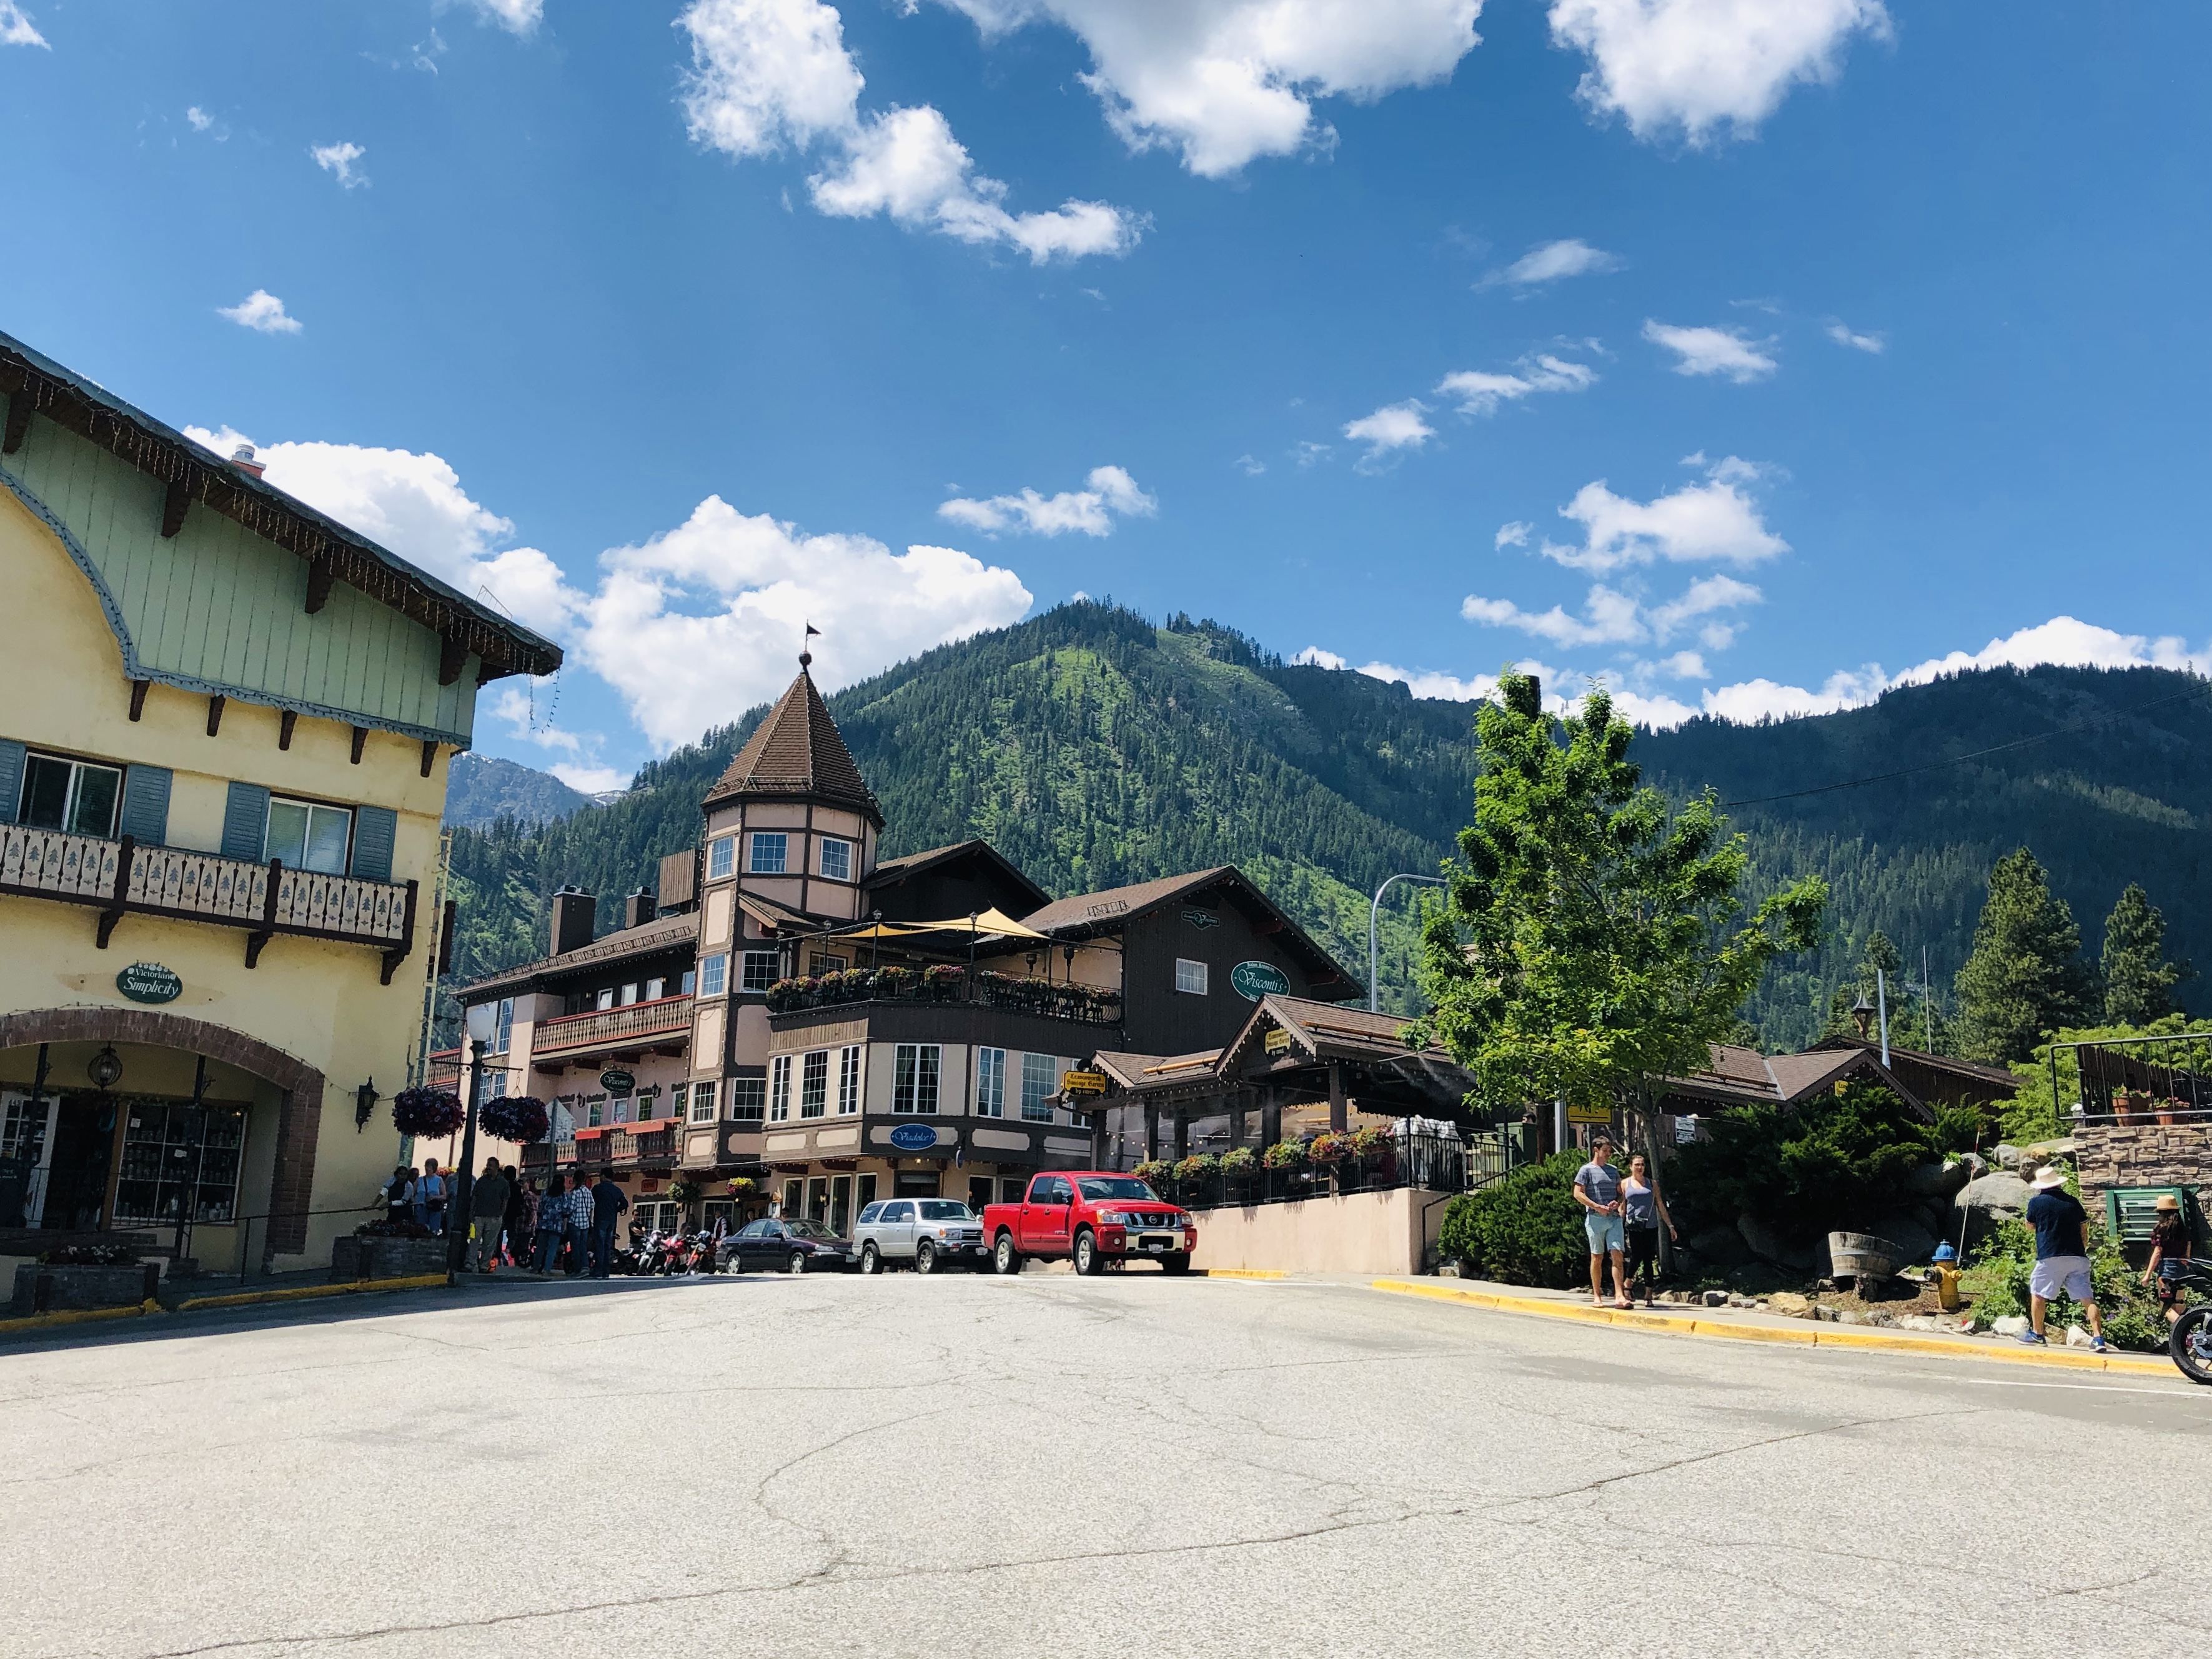 Photo of Leavenworth WA with Mountain in background